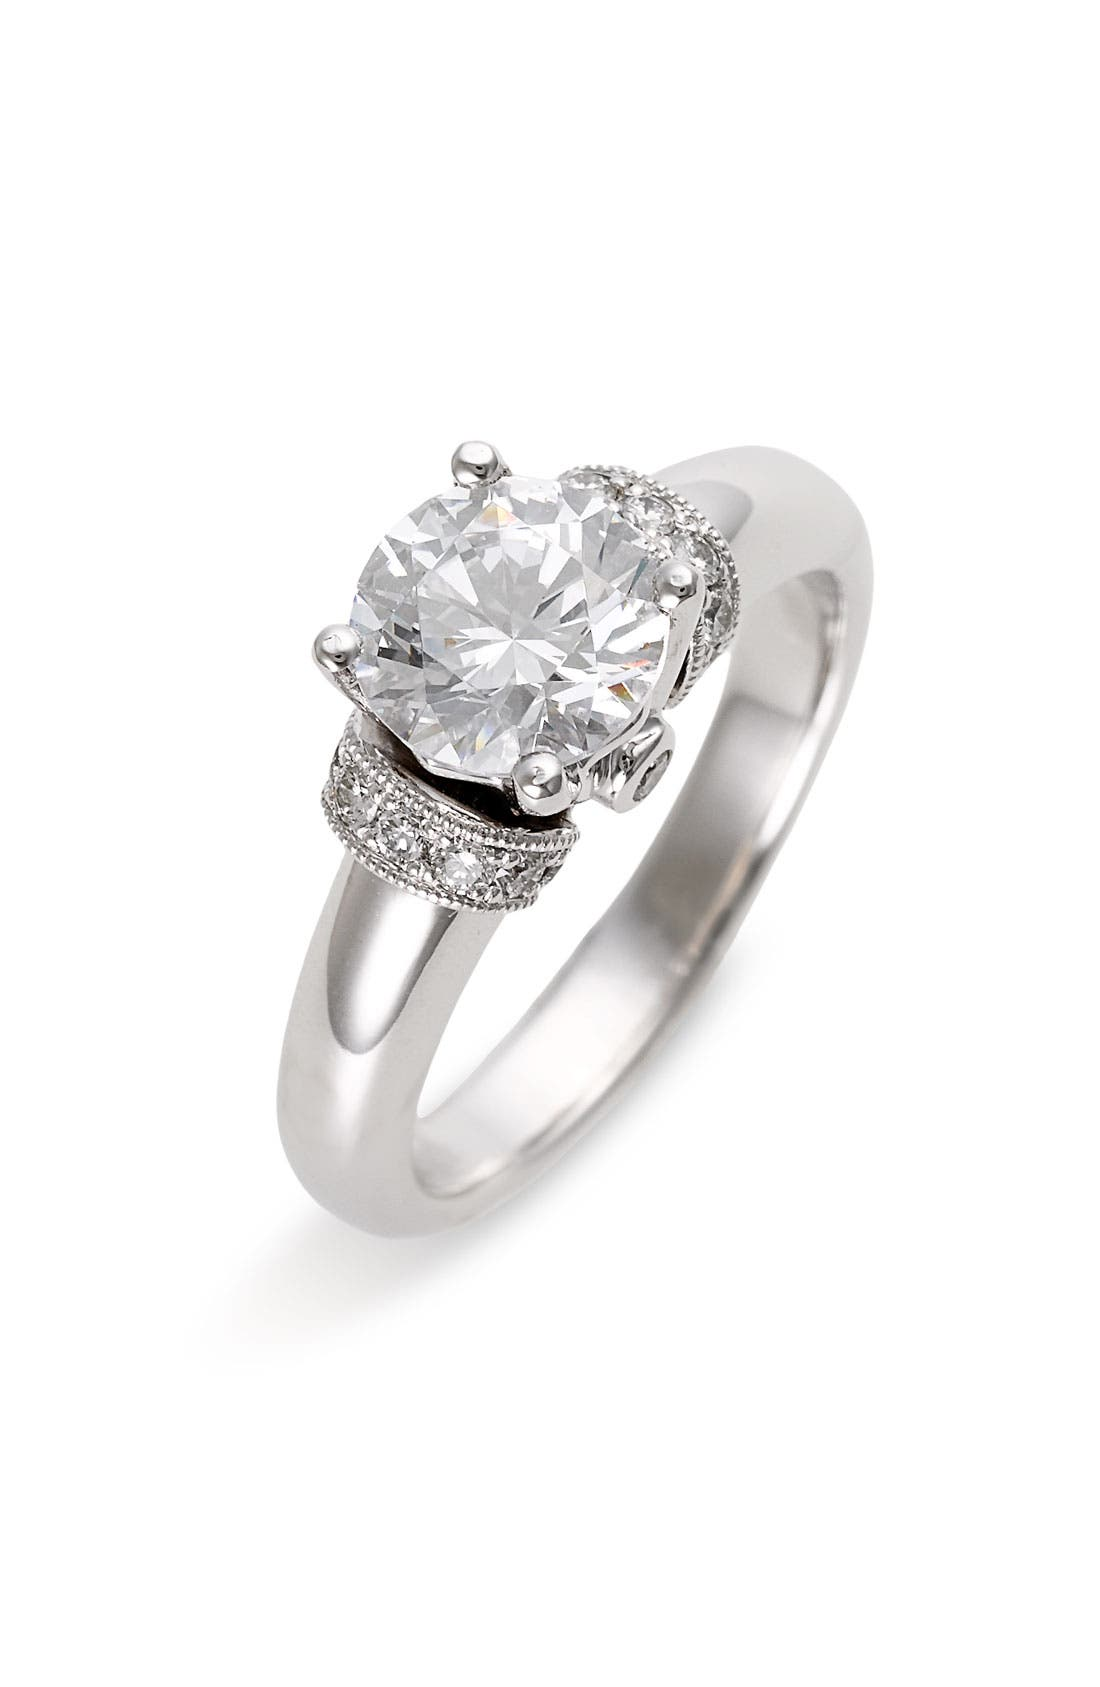 Main Image - Jack Kelége 'Romance' Diamond Engagement Ring Setting